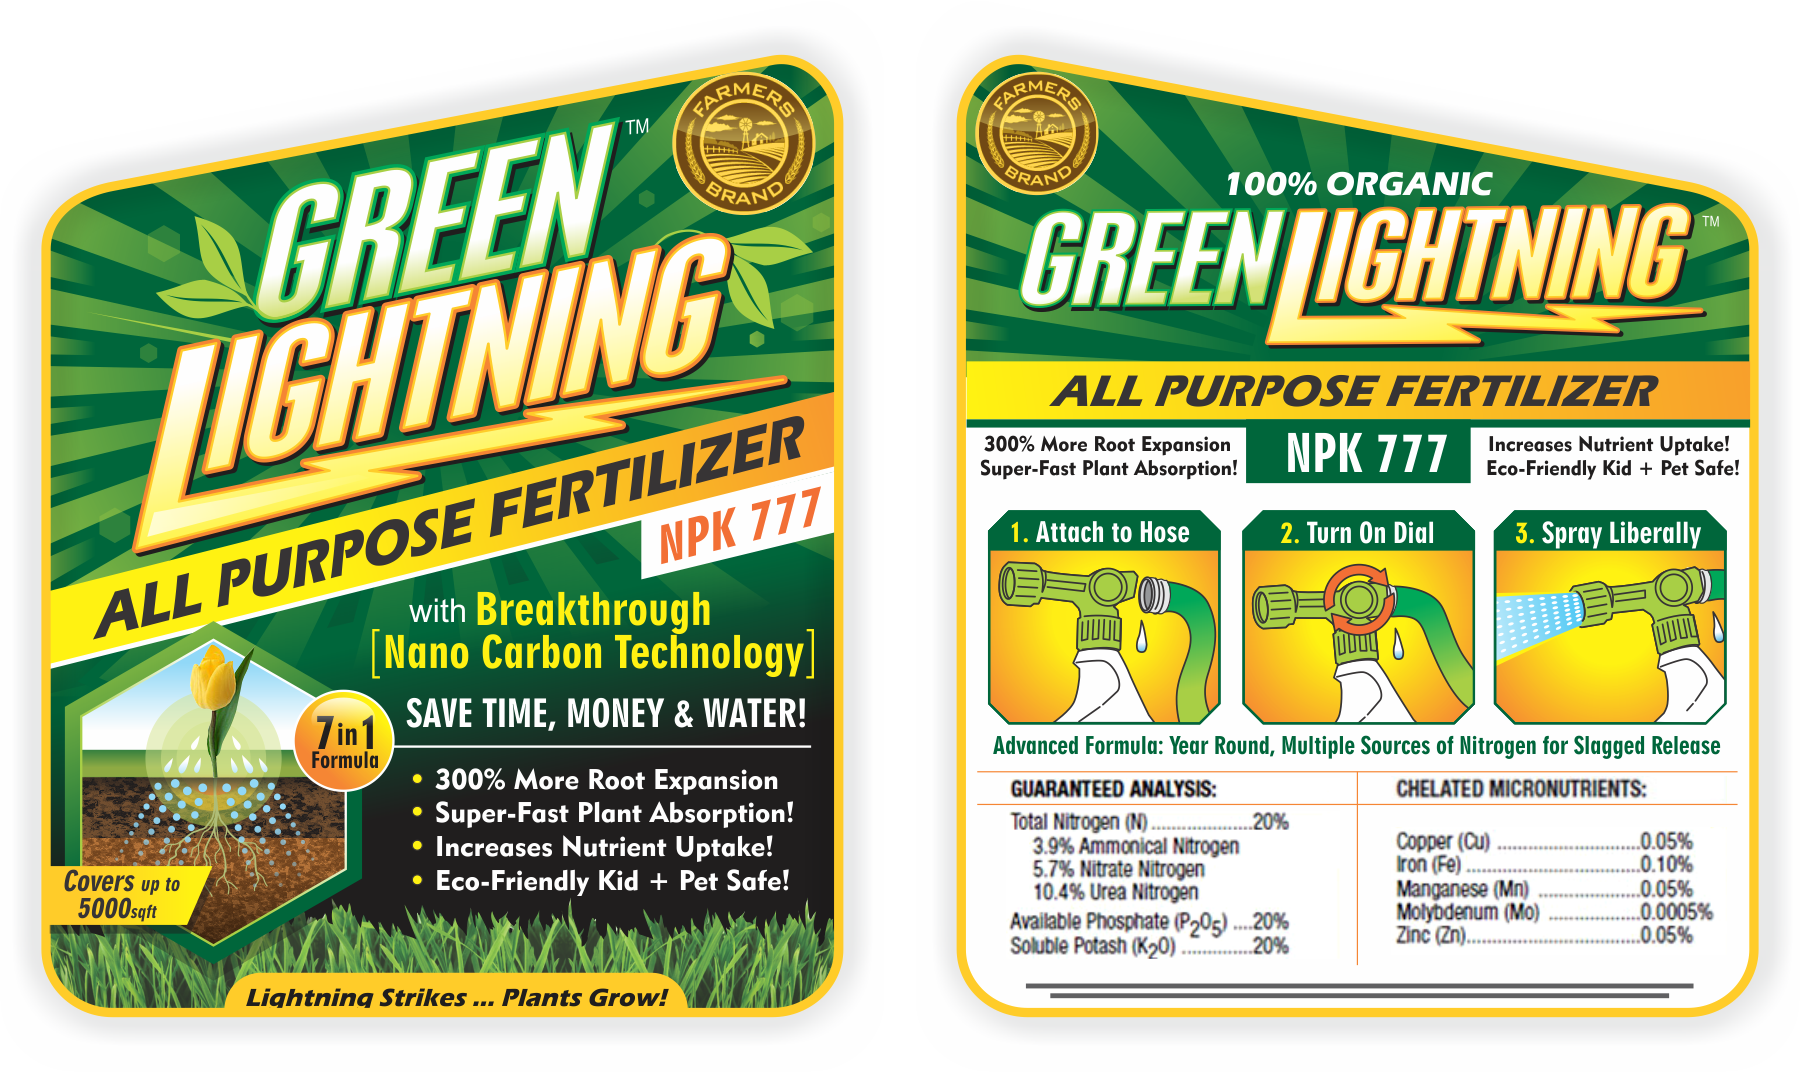 Attention-grabbing label for Green Lightning